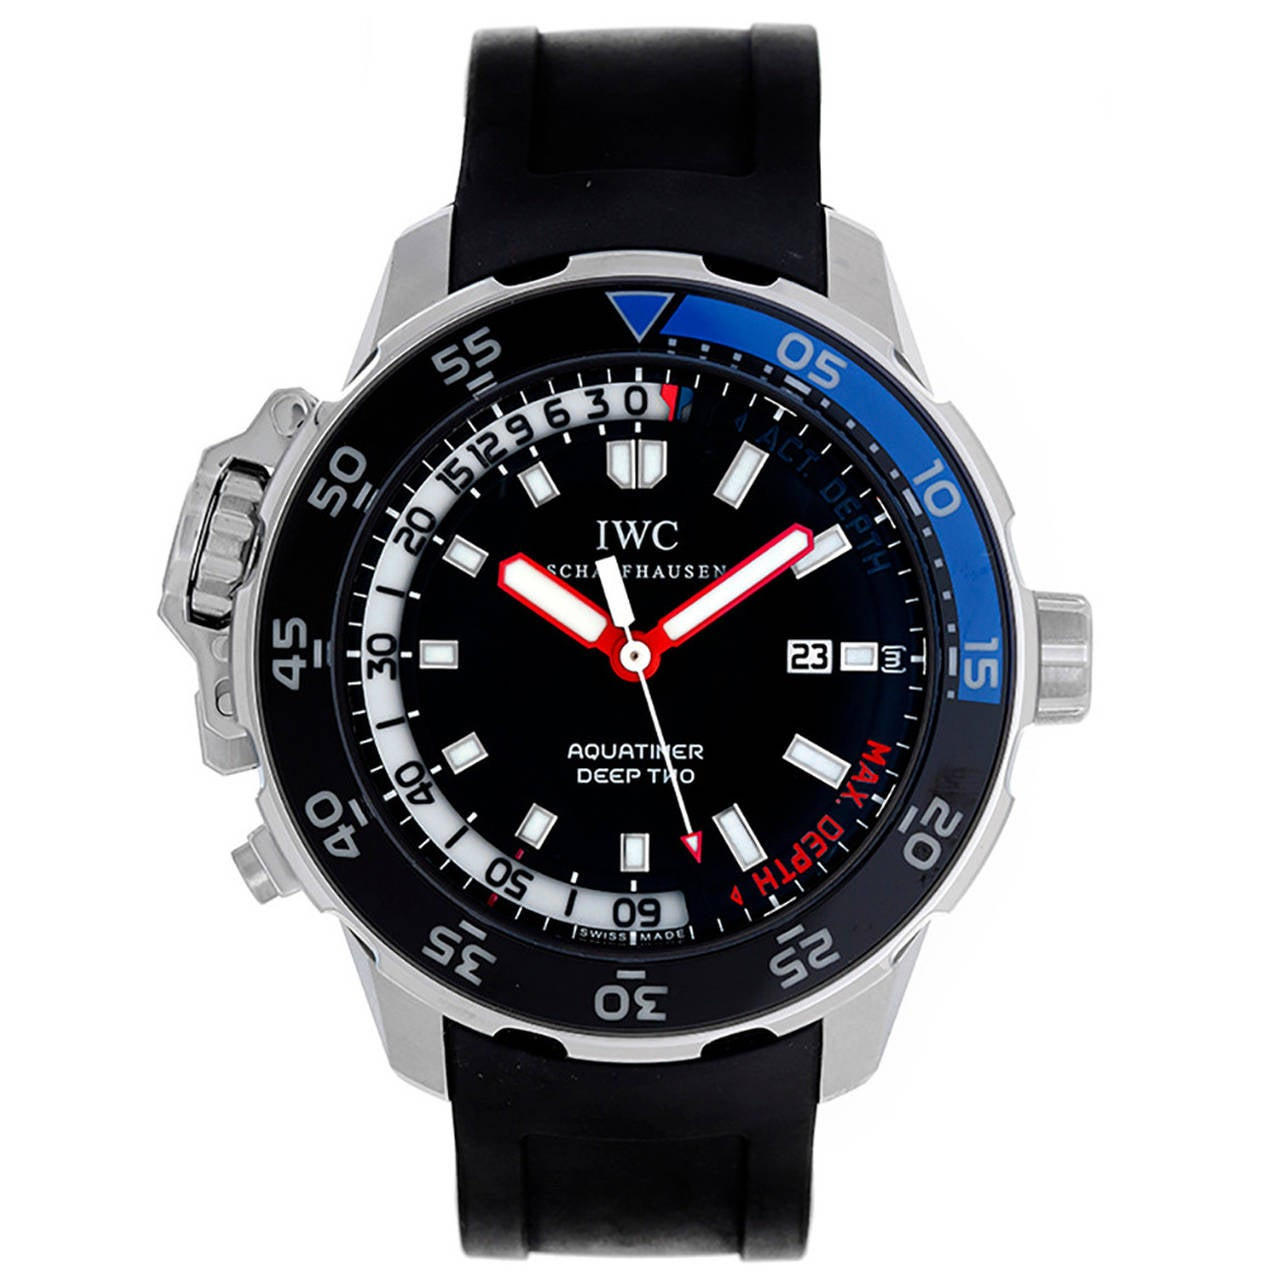 IWC Aquatimer Deep Two Stainless Steel Men's Diver's Watch IW354702 (IW3547-02)